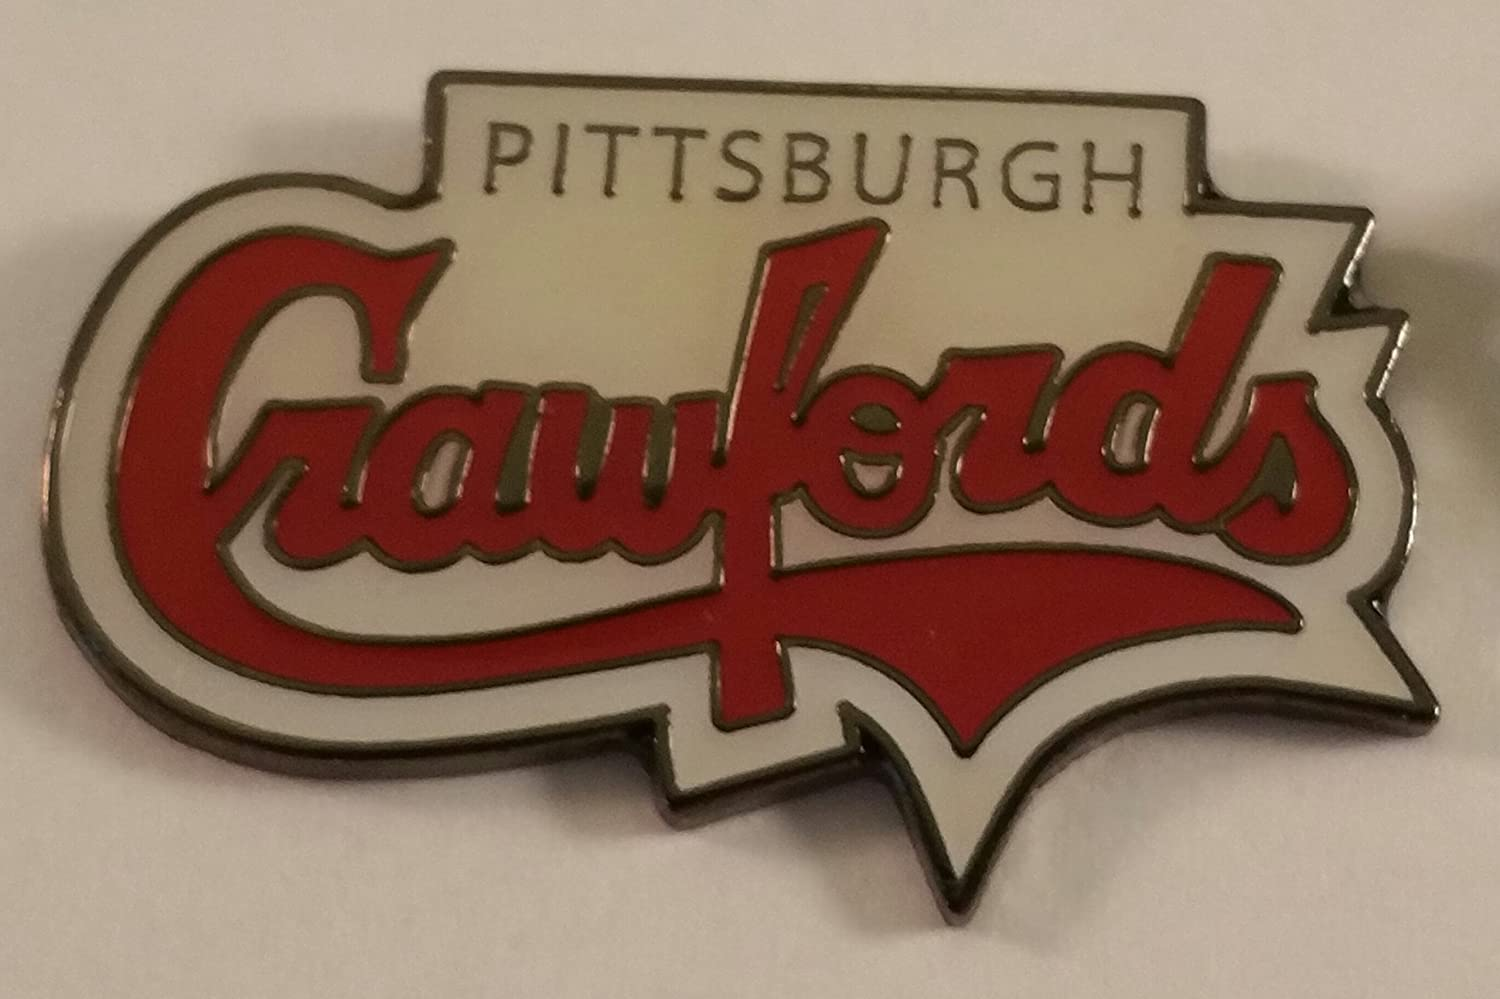 Pittsburgh Crawfords Logo Lapel PIN